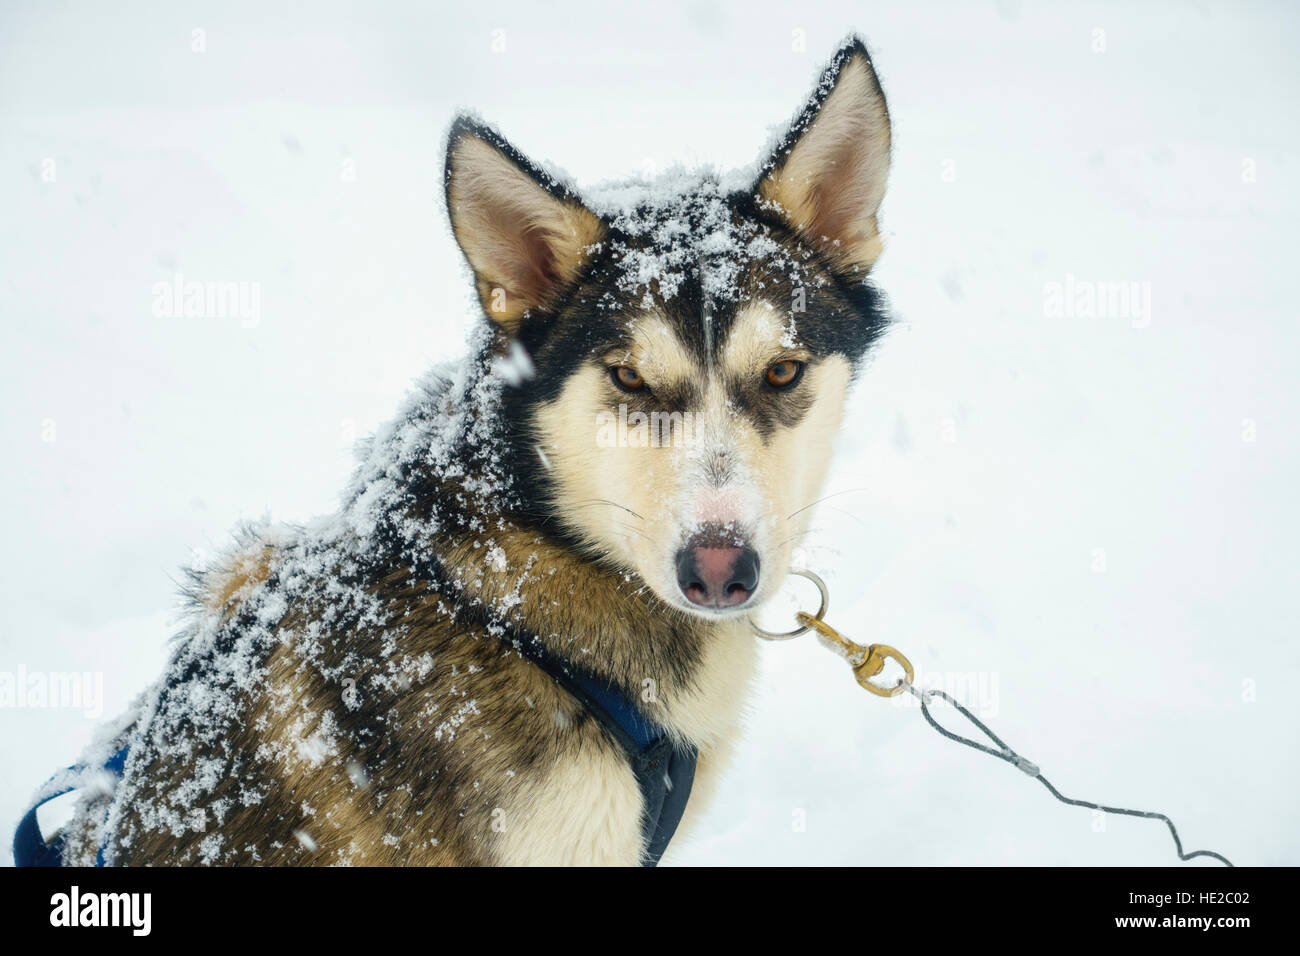 Husky dog, Dog sledding in Vindelfjällen, Sweden - Stock Image